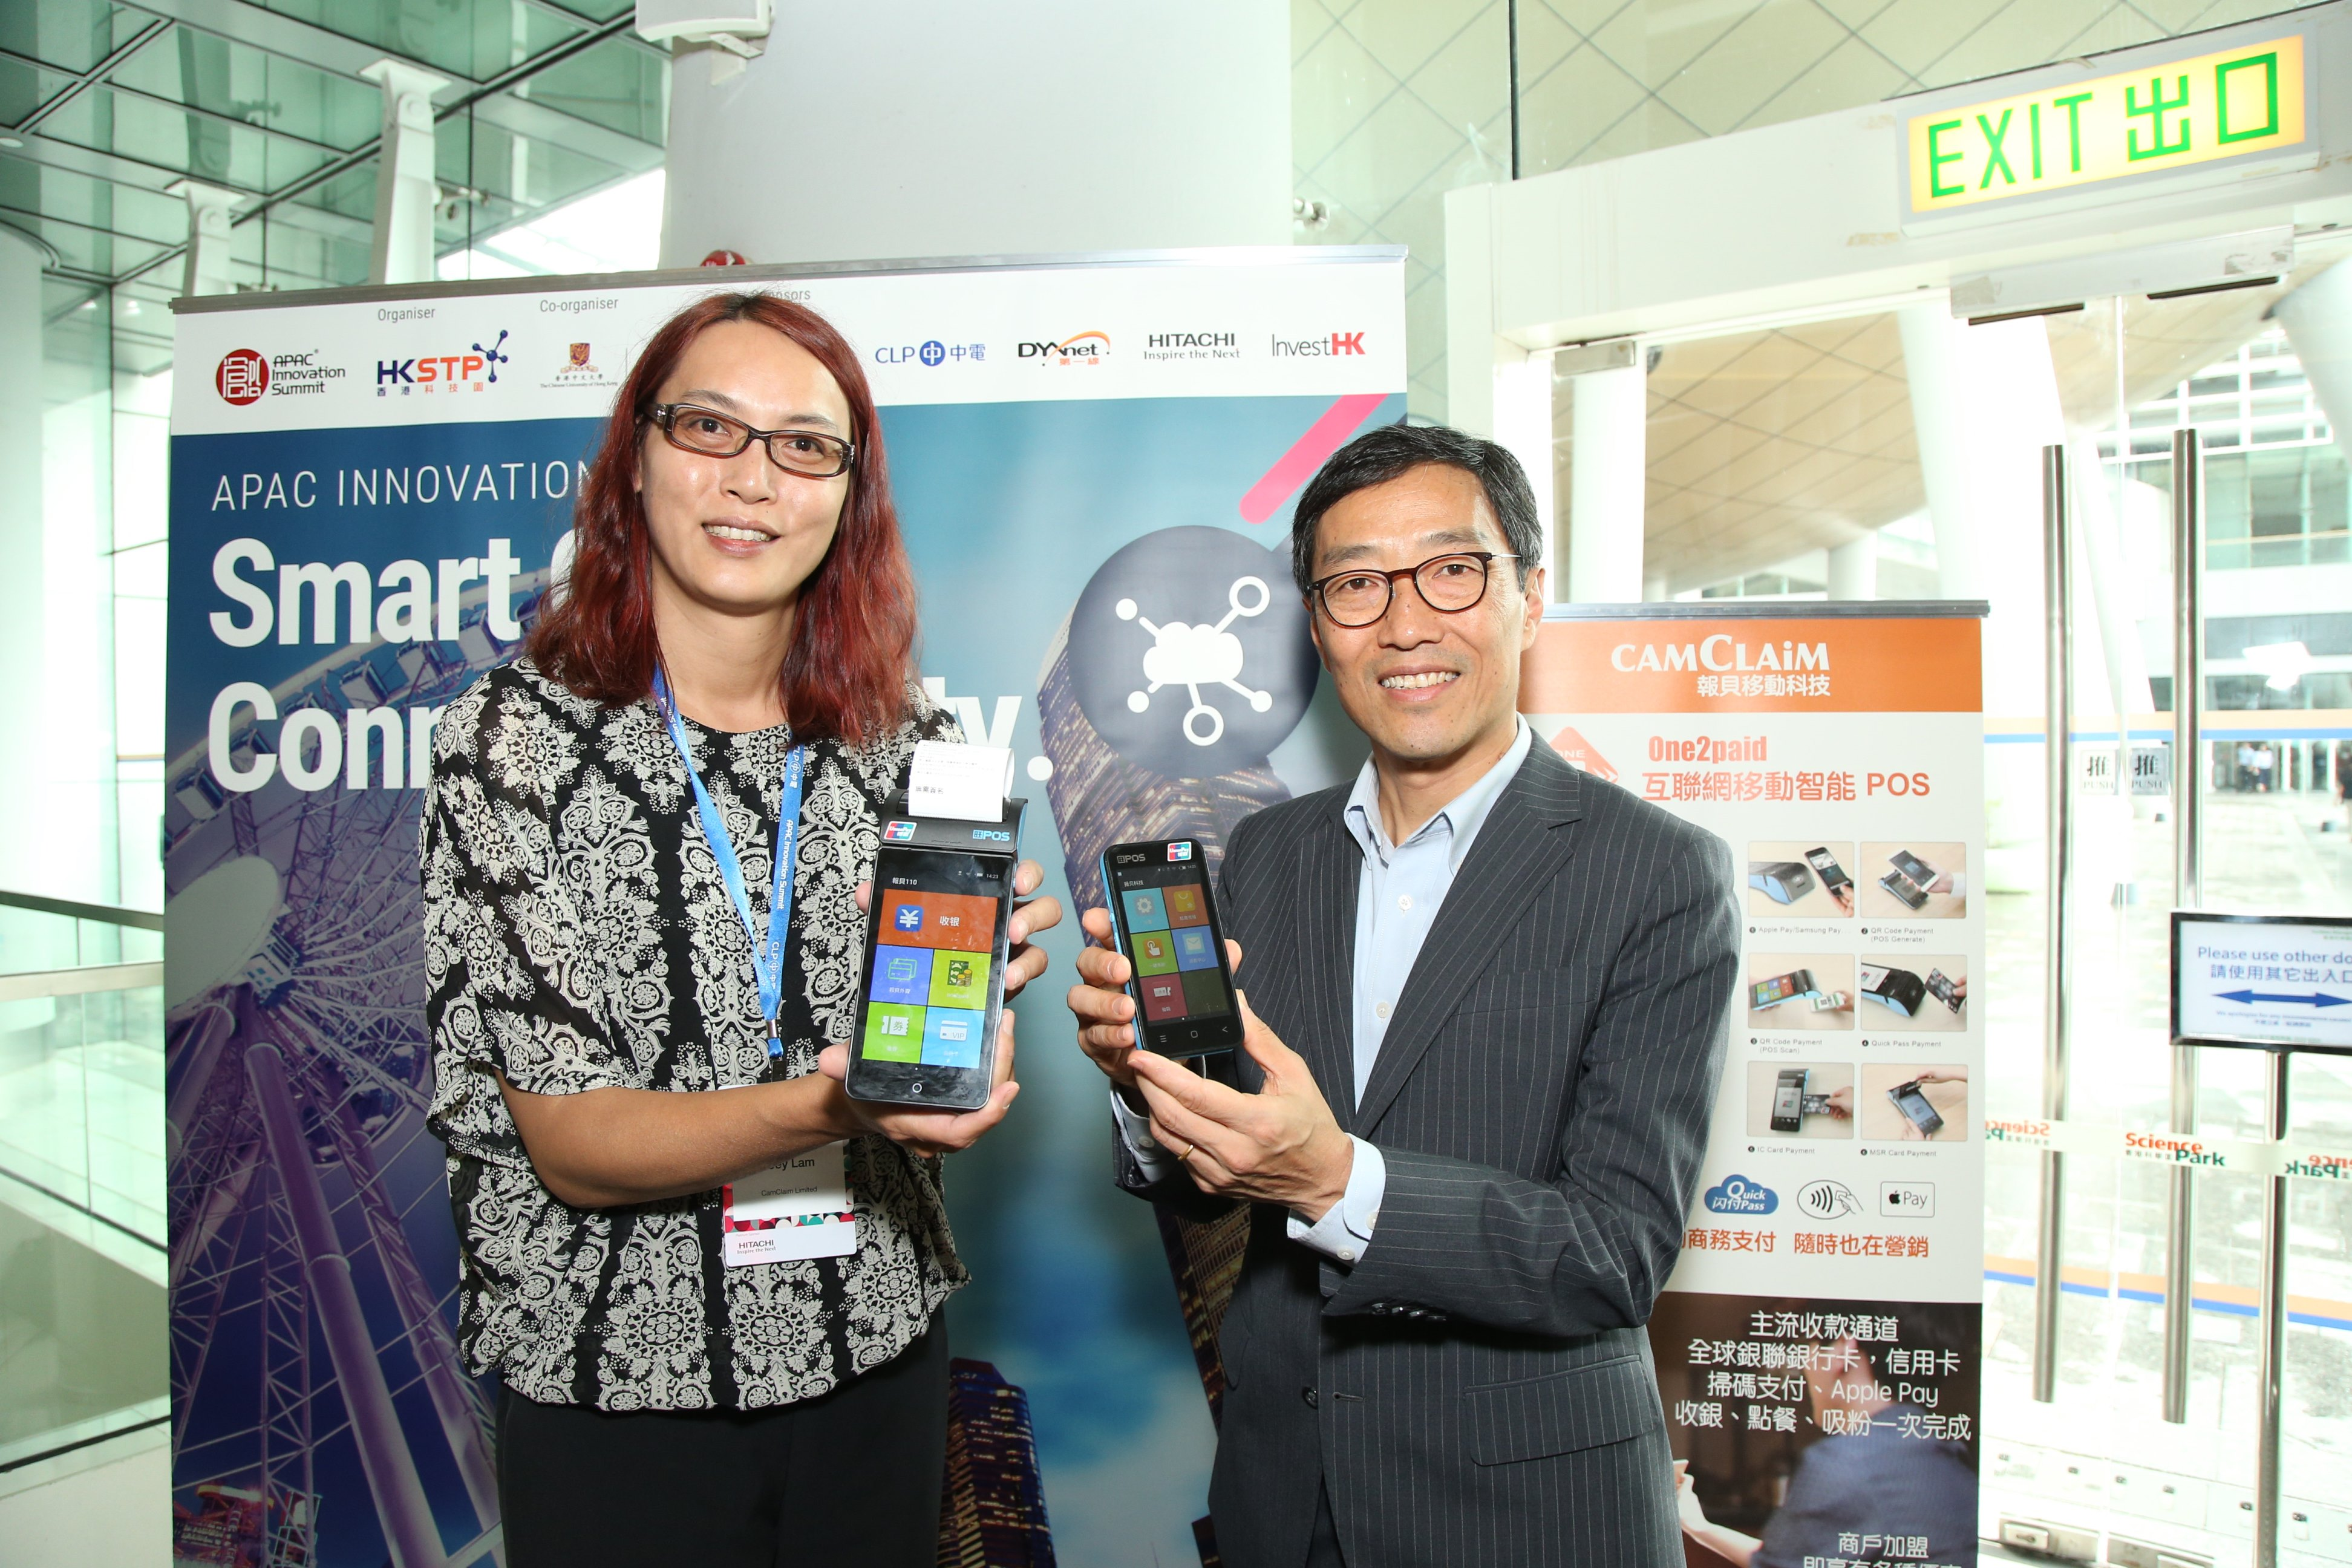 CamClaim's mobile payment platform is trialed in Science Park retail outlets